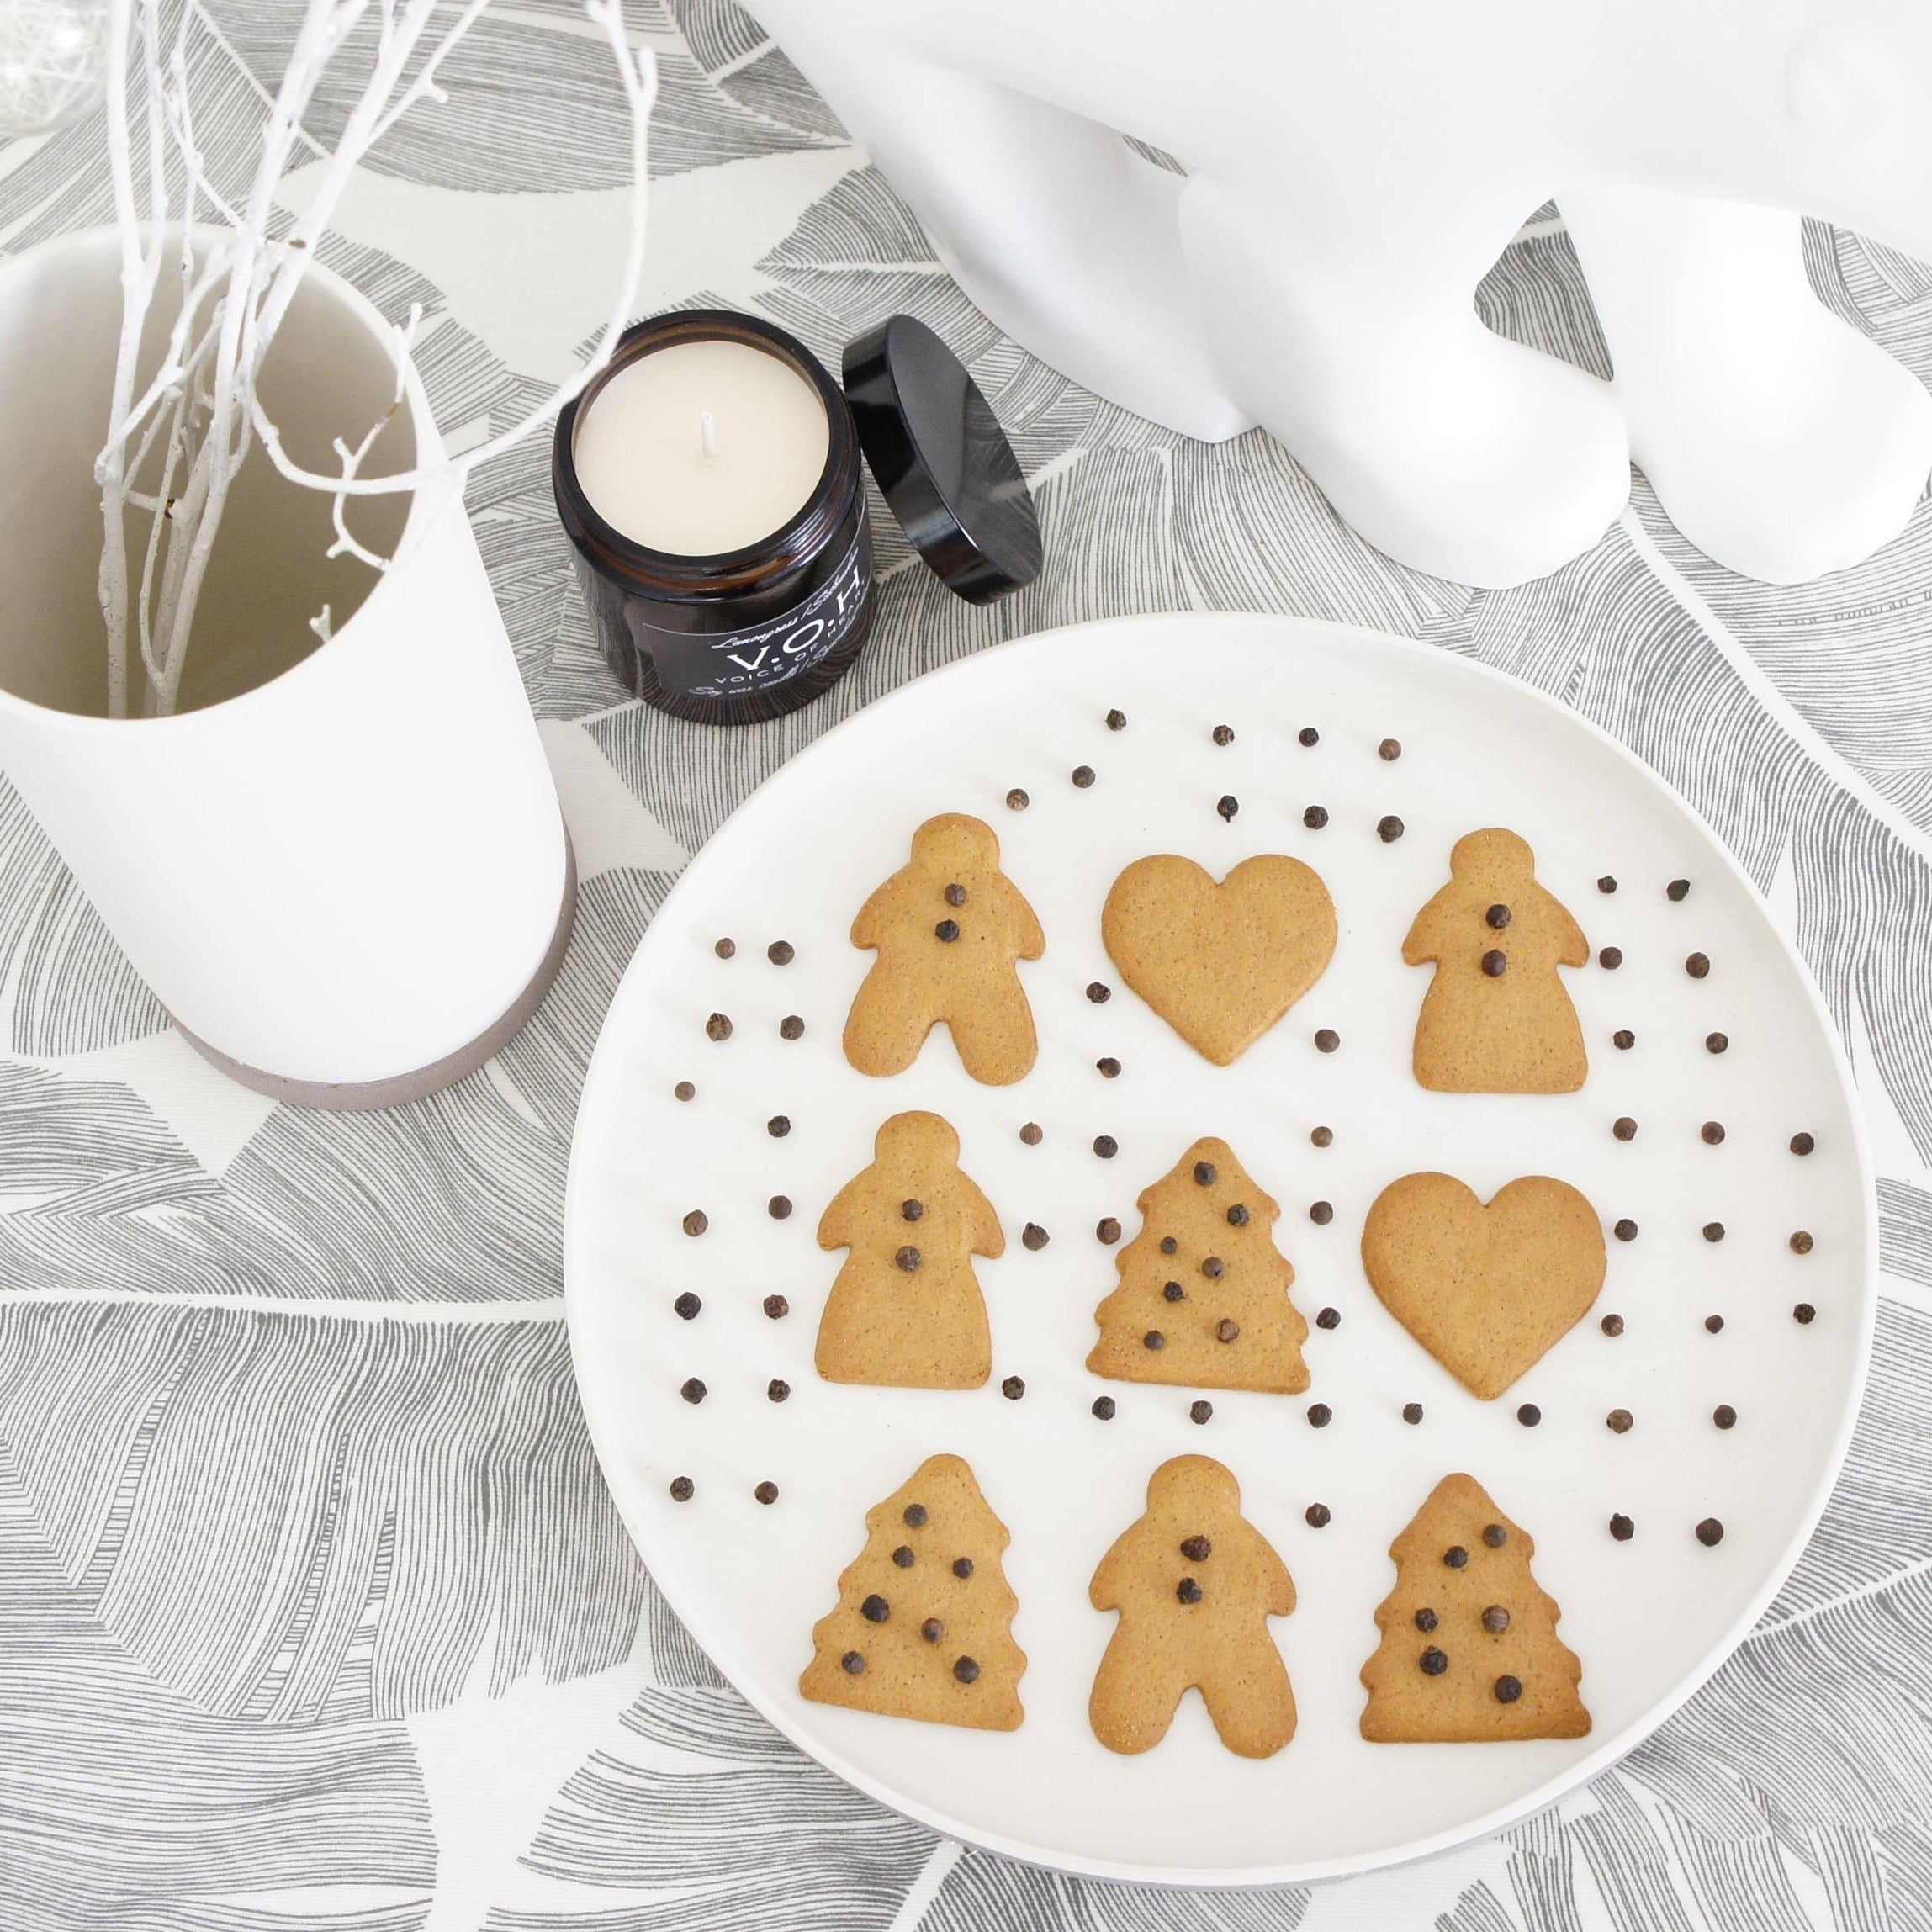 Gingerbread biscuits on a white platter